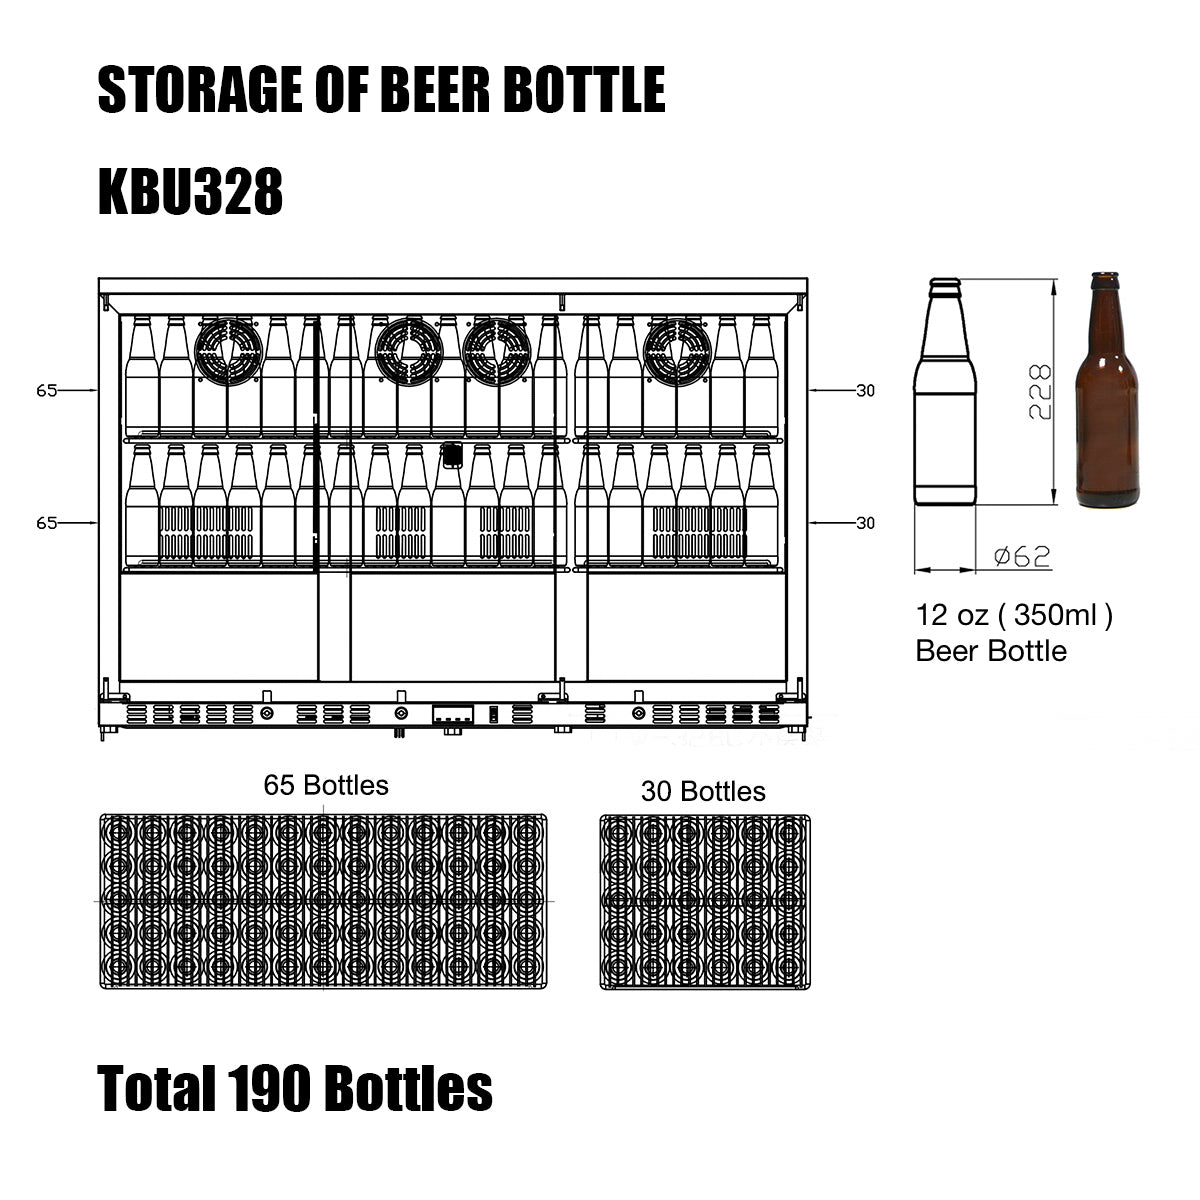 KBU328 Storage of Beer Bottle